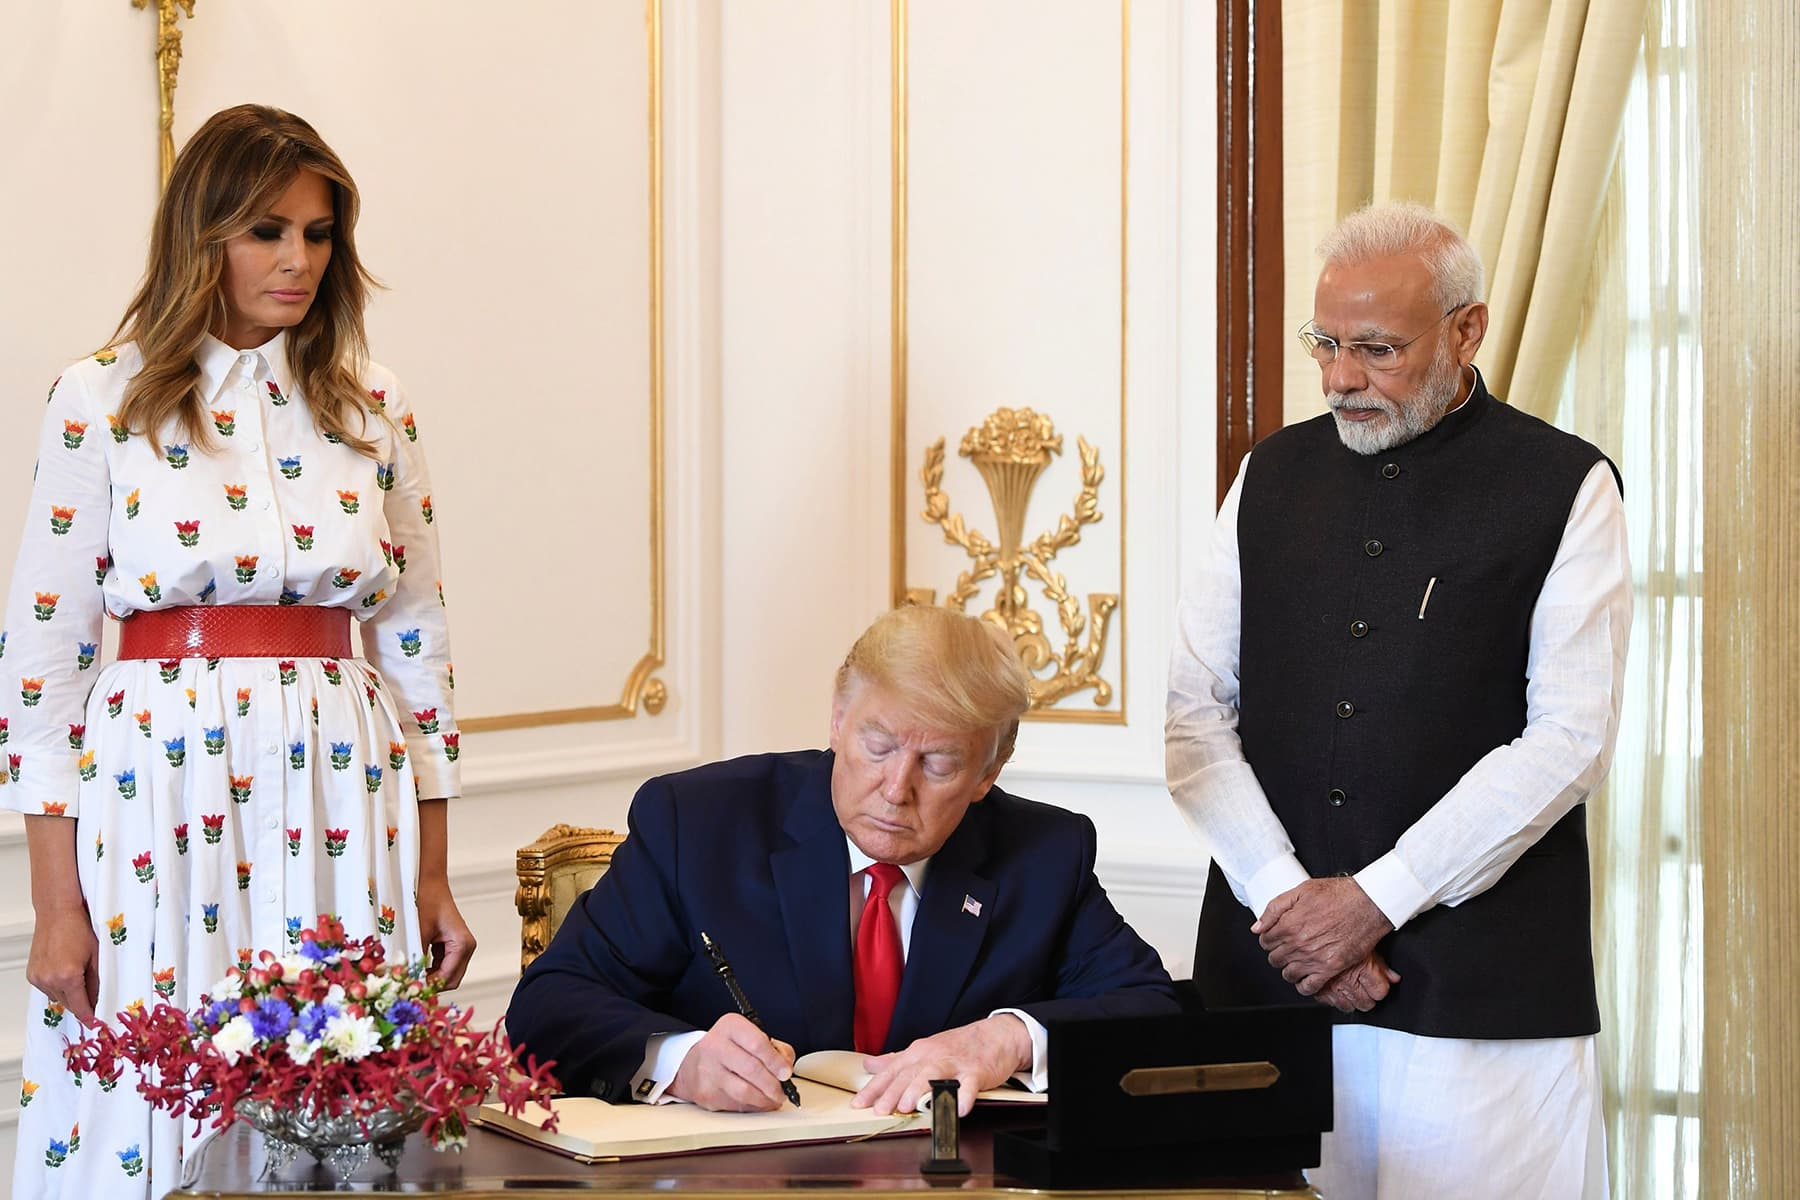 US President Donald Trump signs the visitor's book as First Lady Melania Trump and India's Prime Minister Narendra Modi look on at Hyderabad House in New Delhi. — AFP/MEA